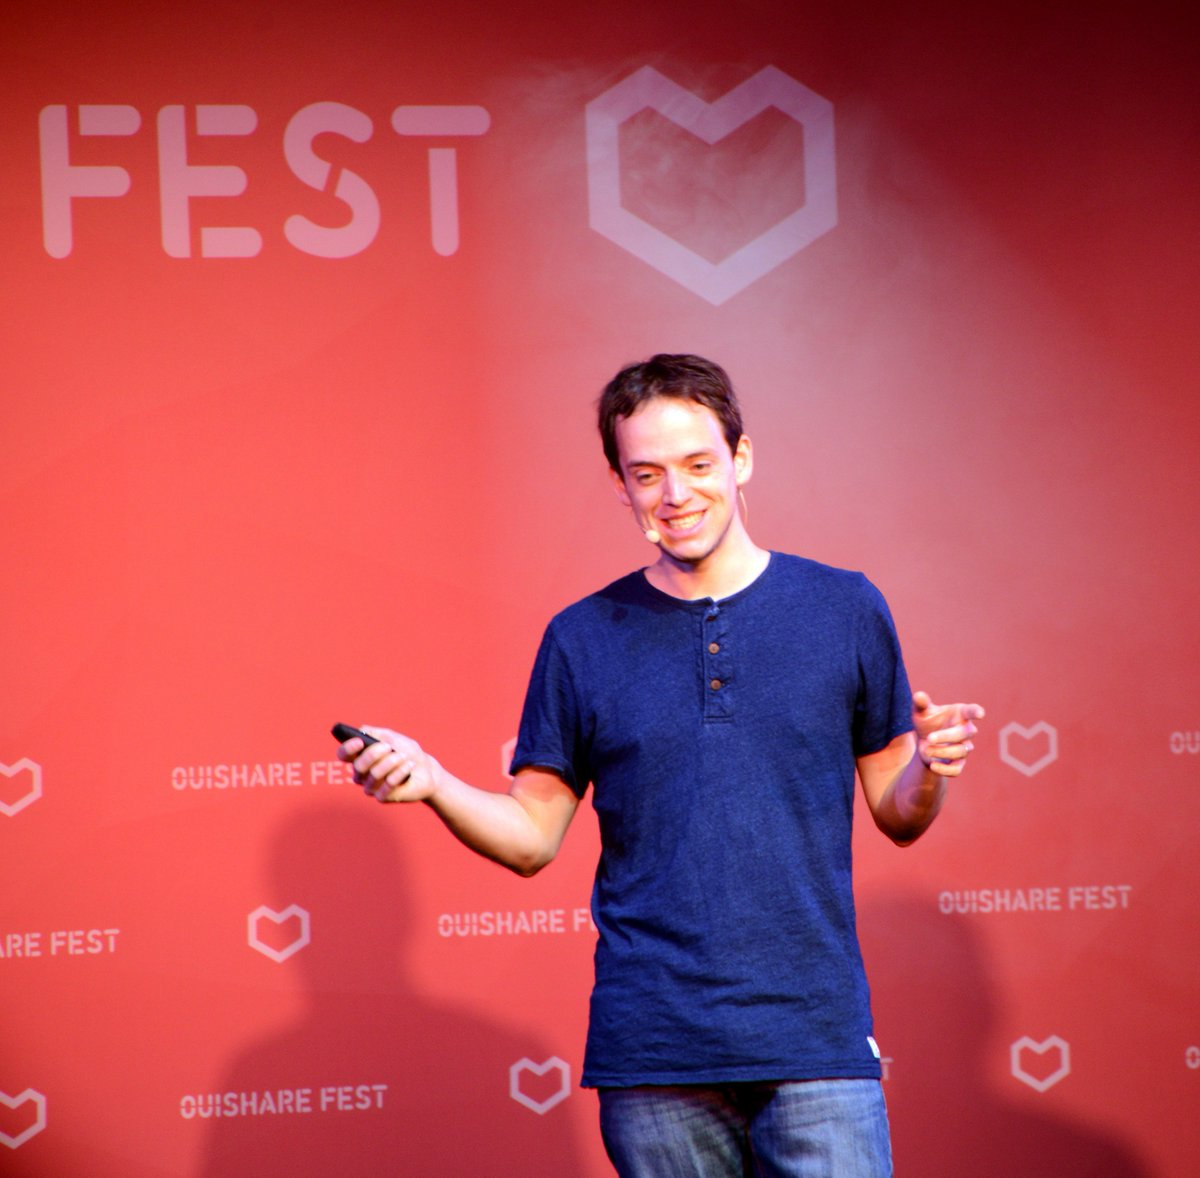 Former https://t.co/cyyvpYRSvM co-founder @xdamman advocates for next gen transparent startup communities. #OSFest16 https://t.co/JM0qrSiH7X